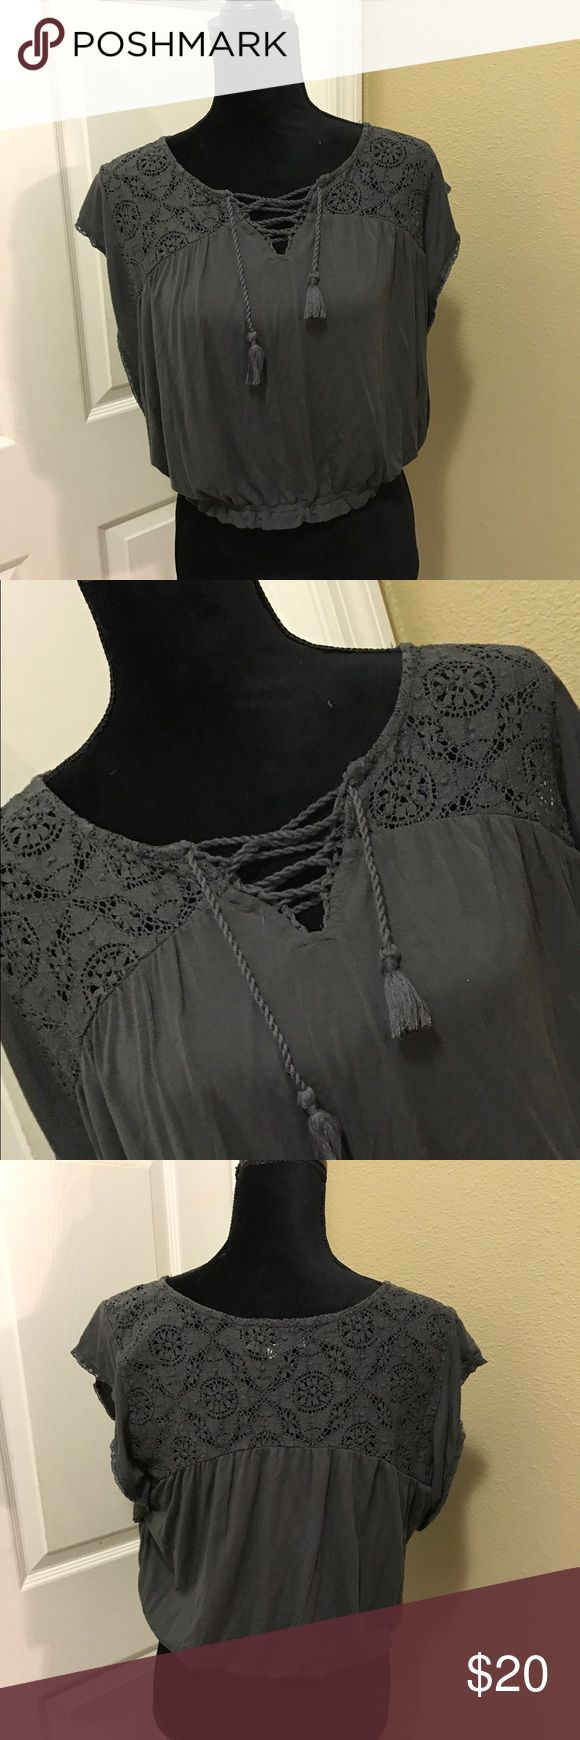 Navy Blue Blouse American Eagle Navy Blue Size Large American Eagle Outfitters Tops Blouses